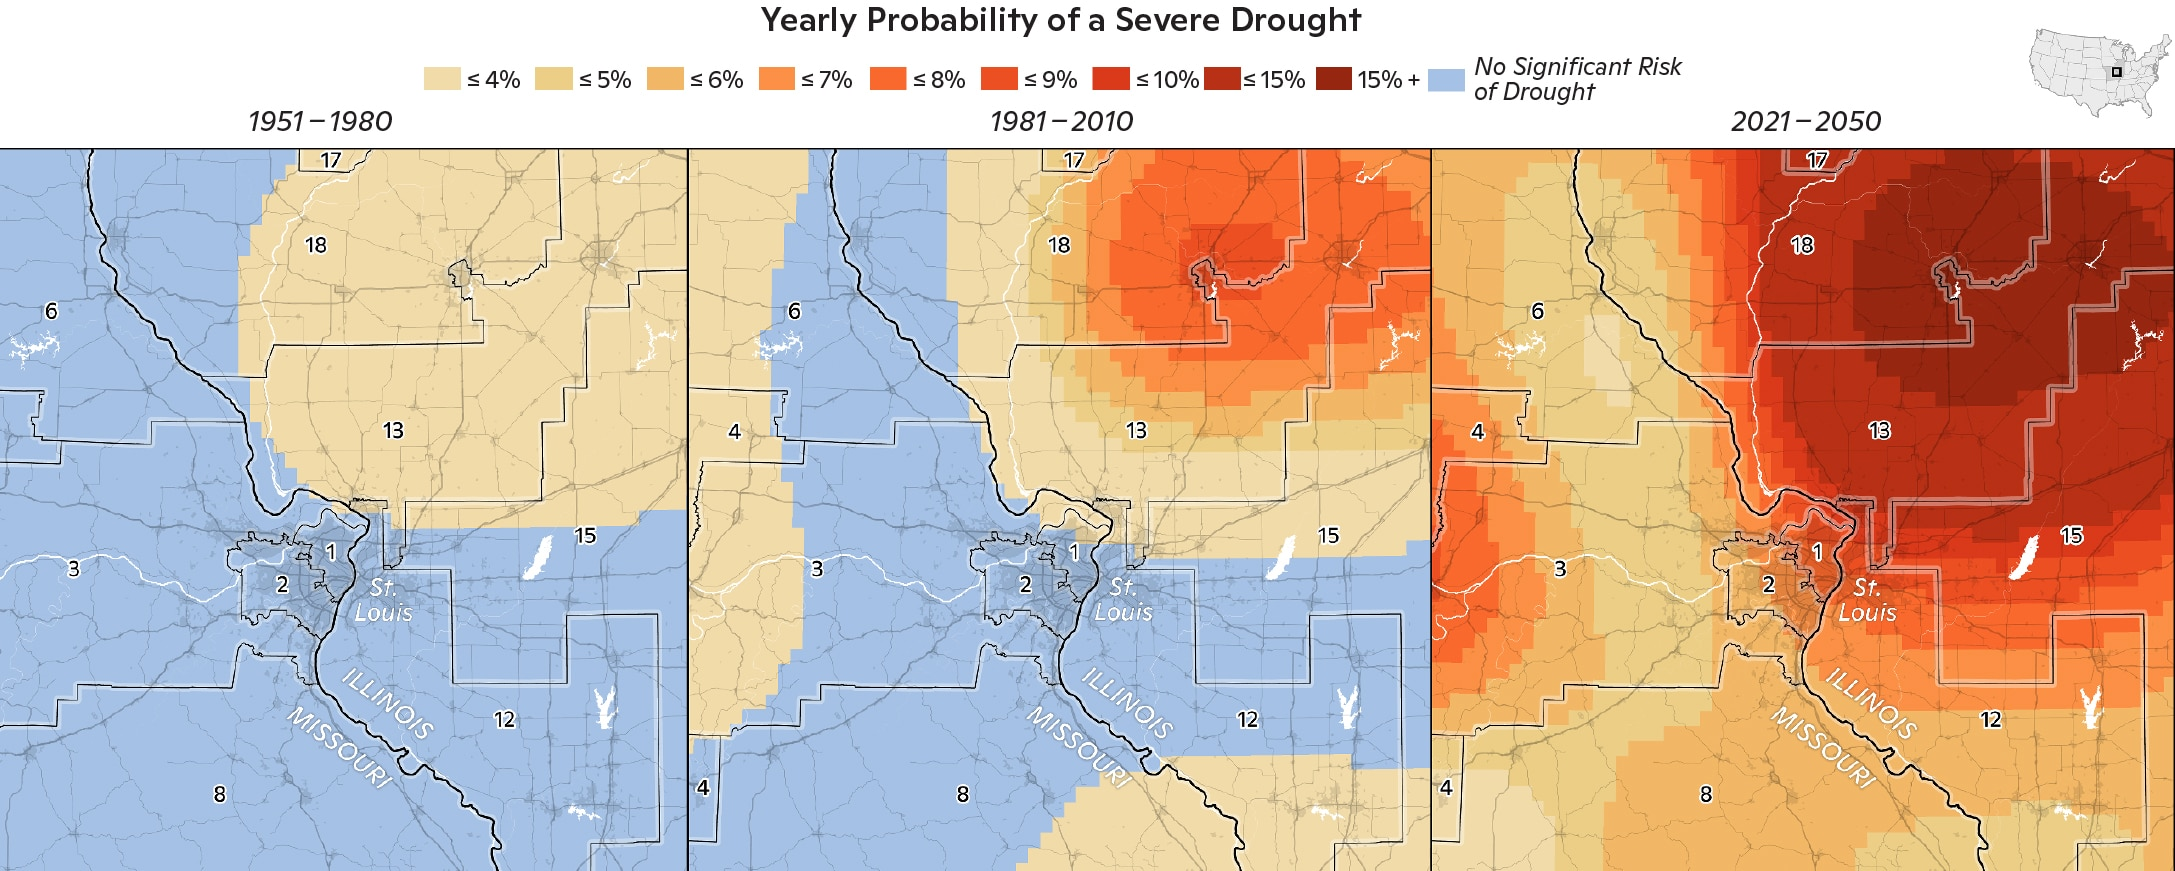 Annual likelihood of extreme drought in the past, present and projected future for the St. Louis, Missouri region. / maps by Carl Churchill